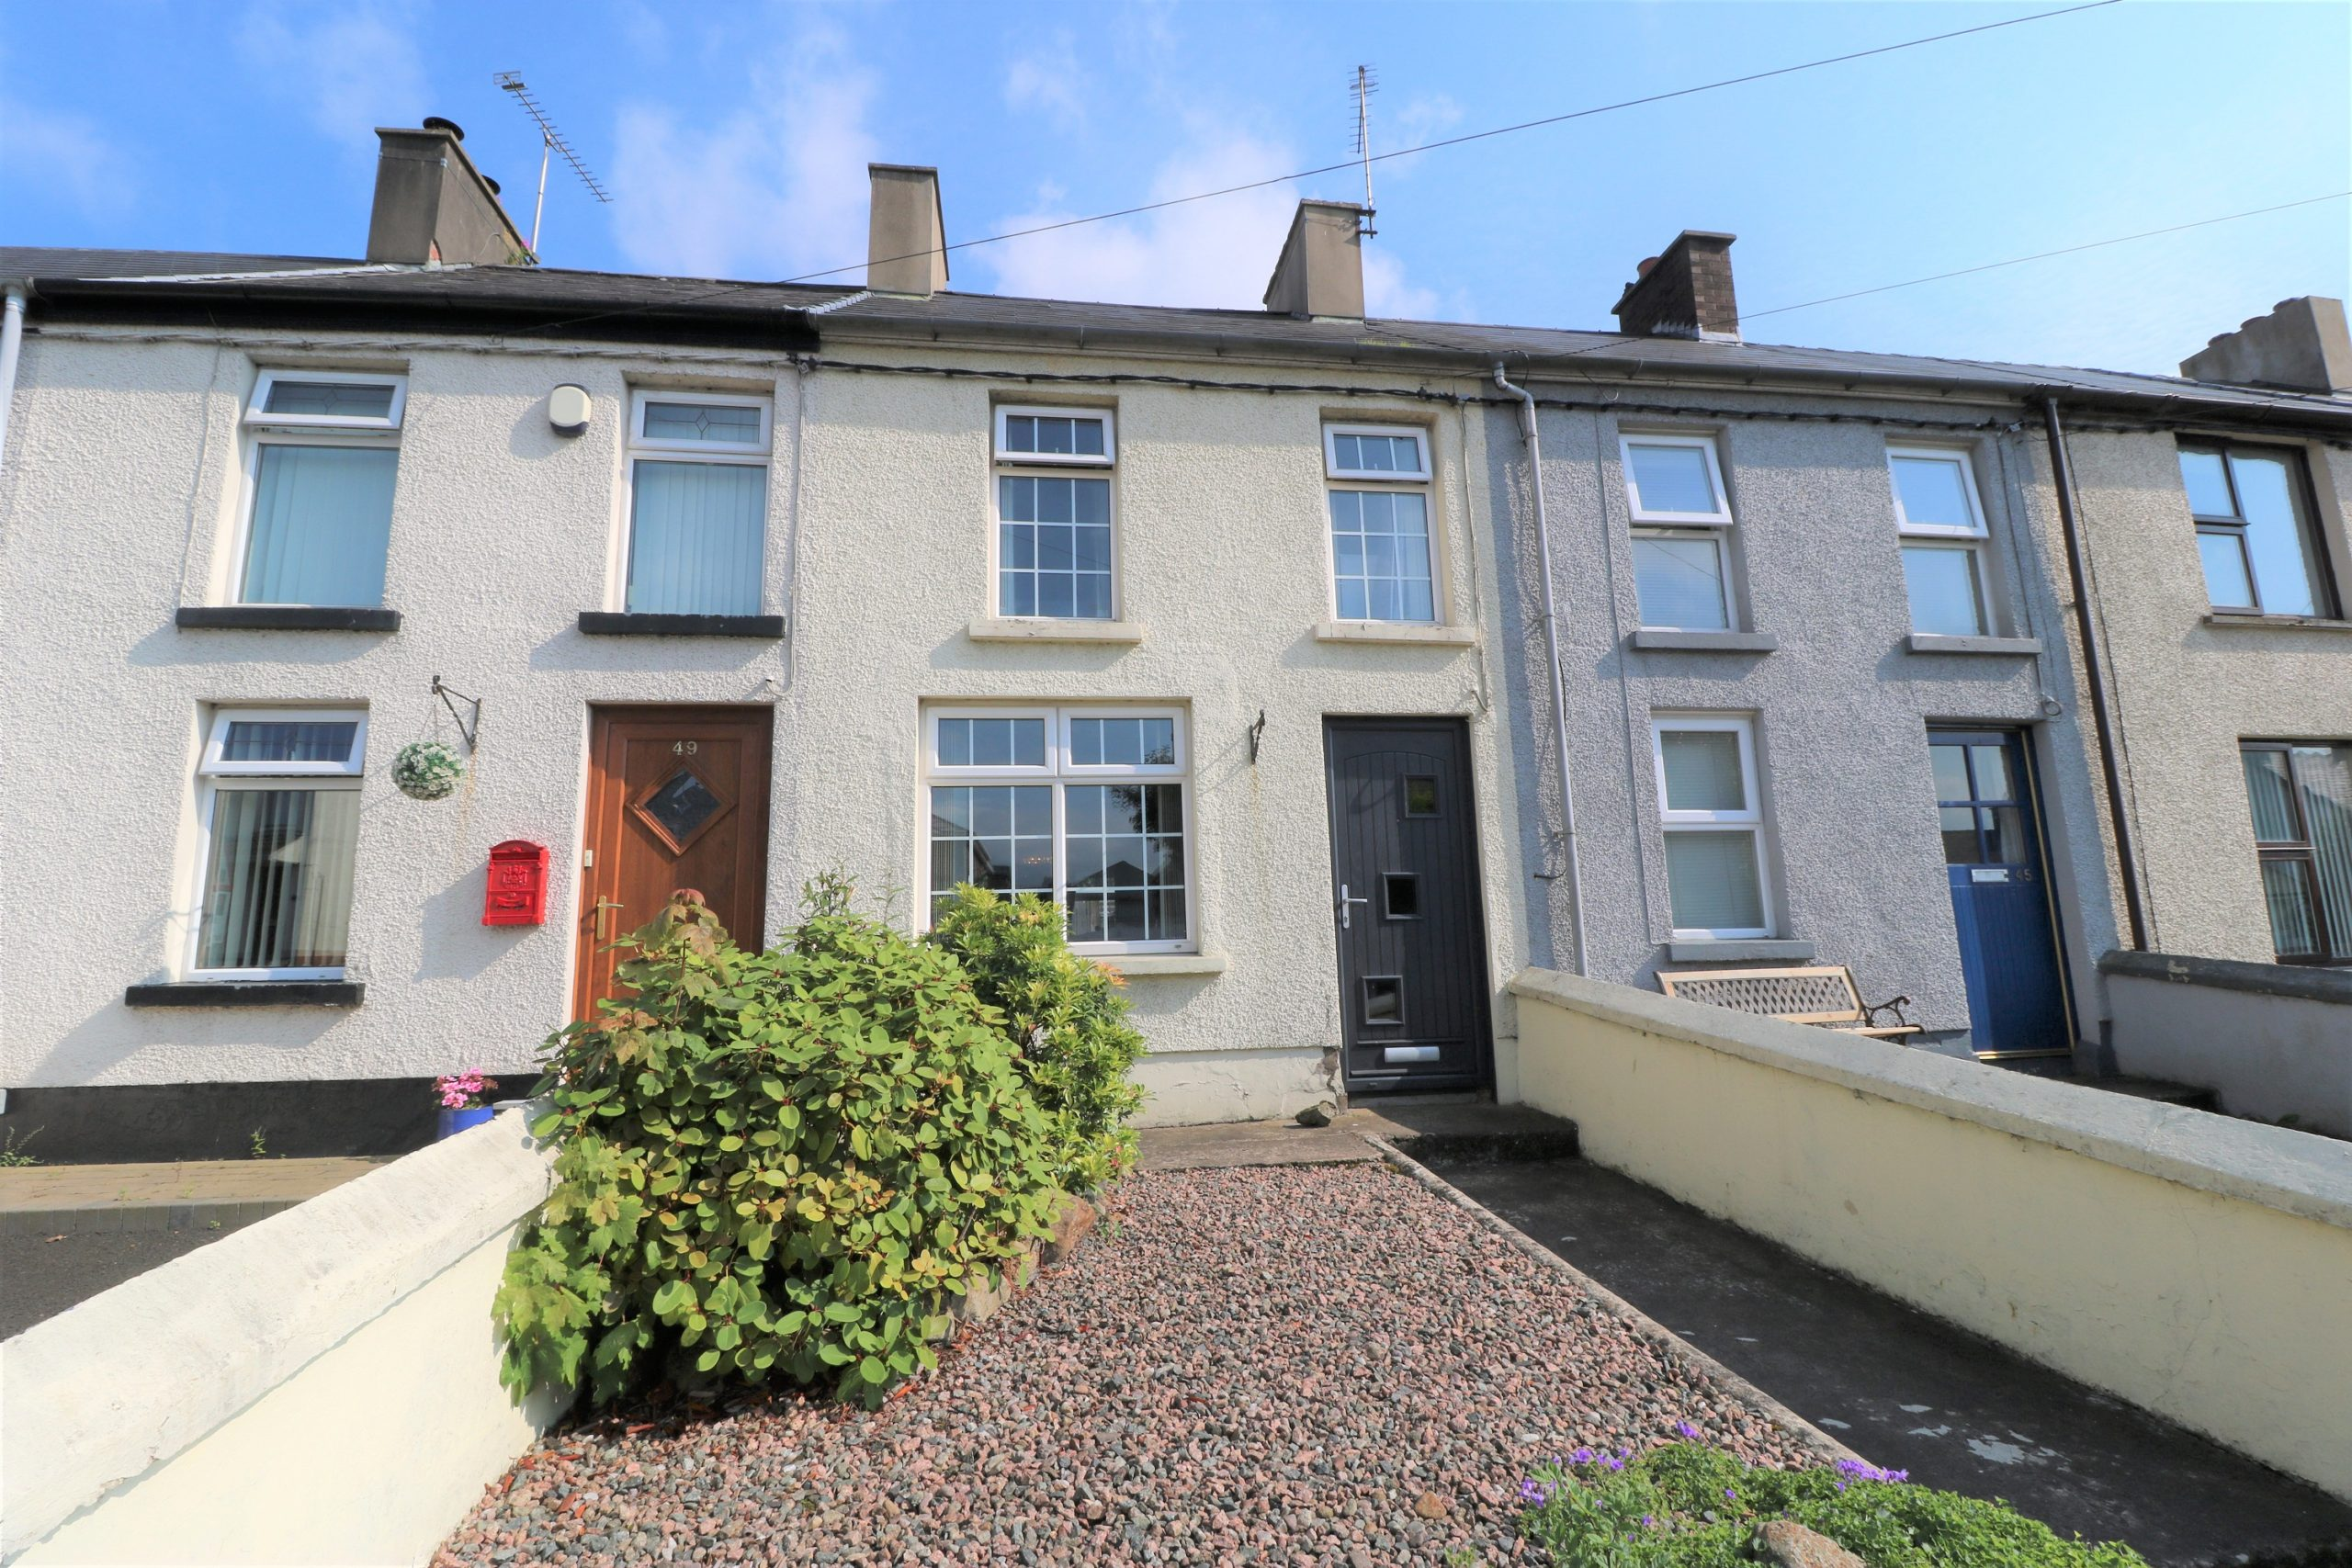 Image of 47 Station Road, Cullybackey, Ballymena, BT42 1BU